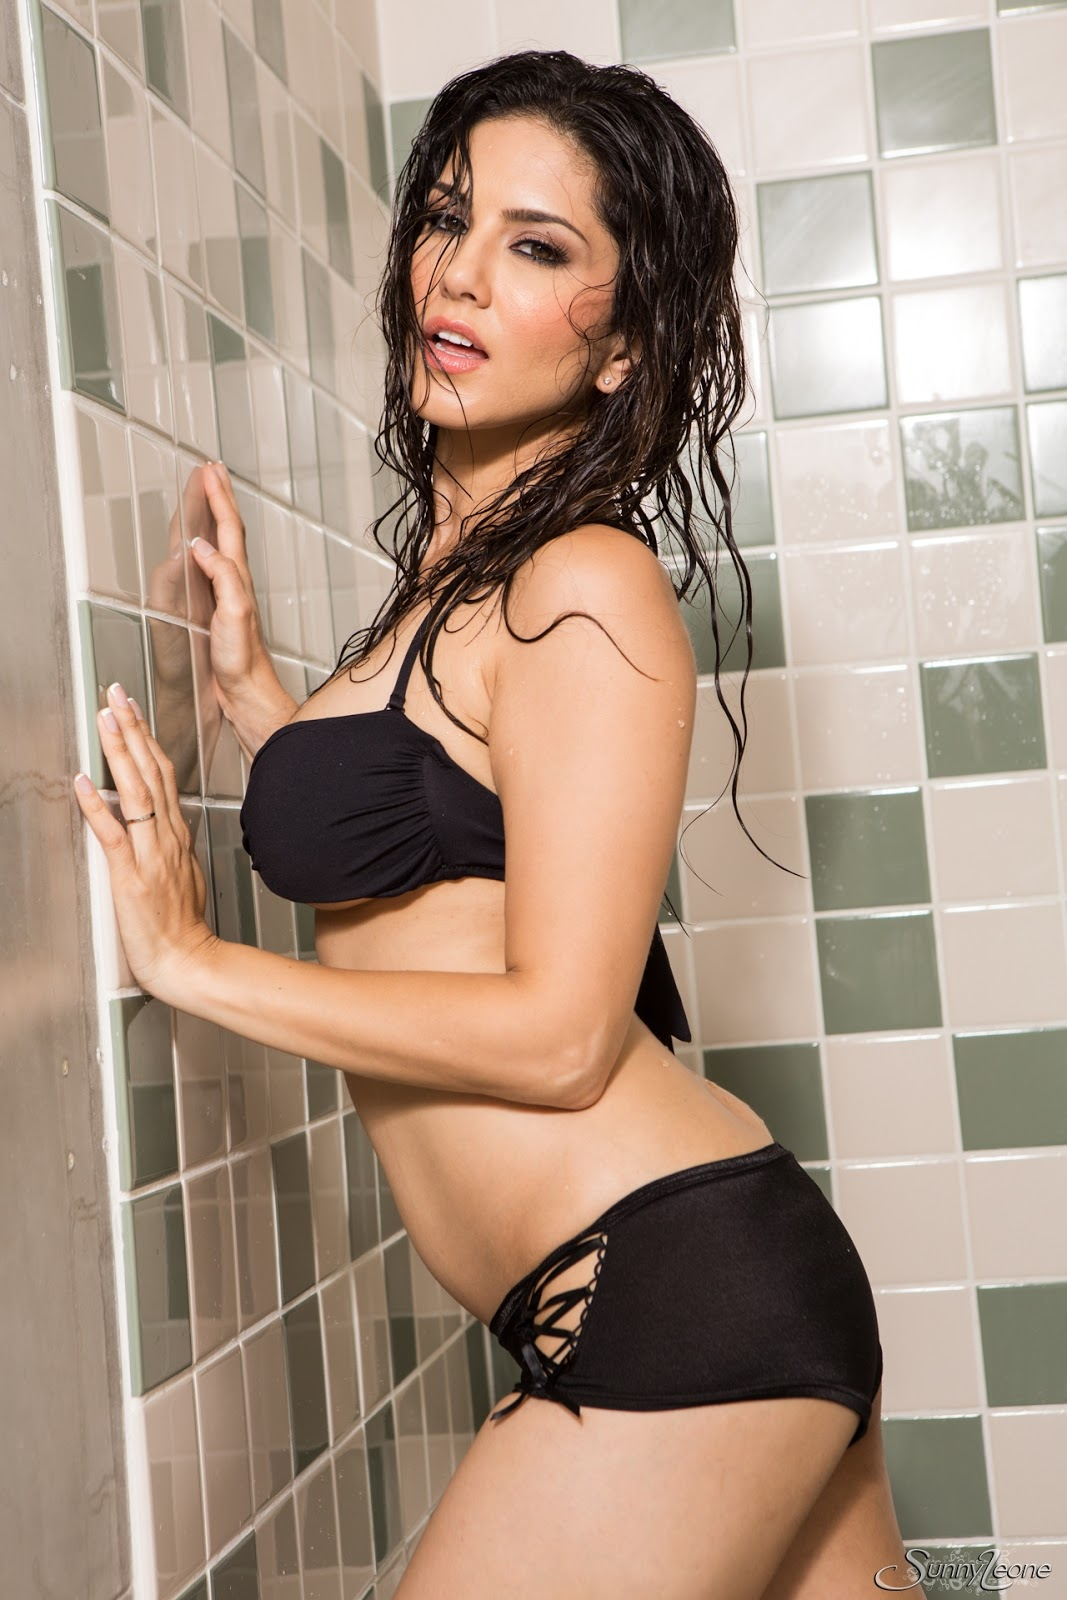 Sunny Leone Is Taking A Hot Shower While In Her Black Wet -7816